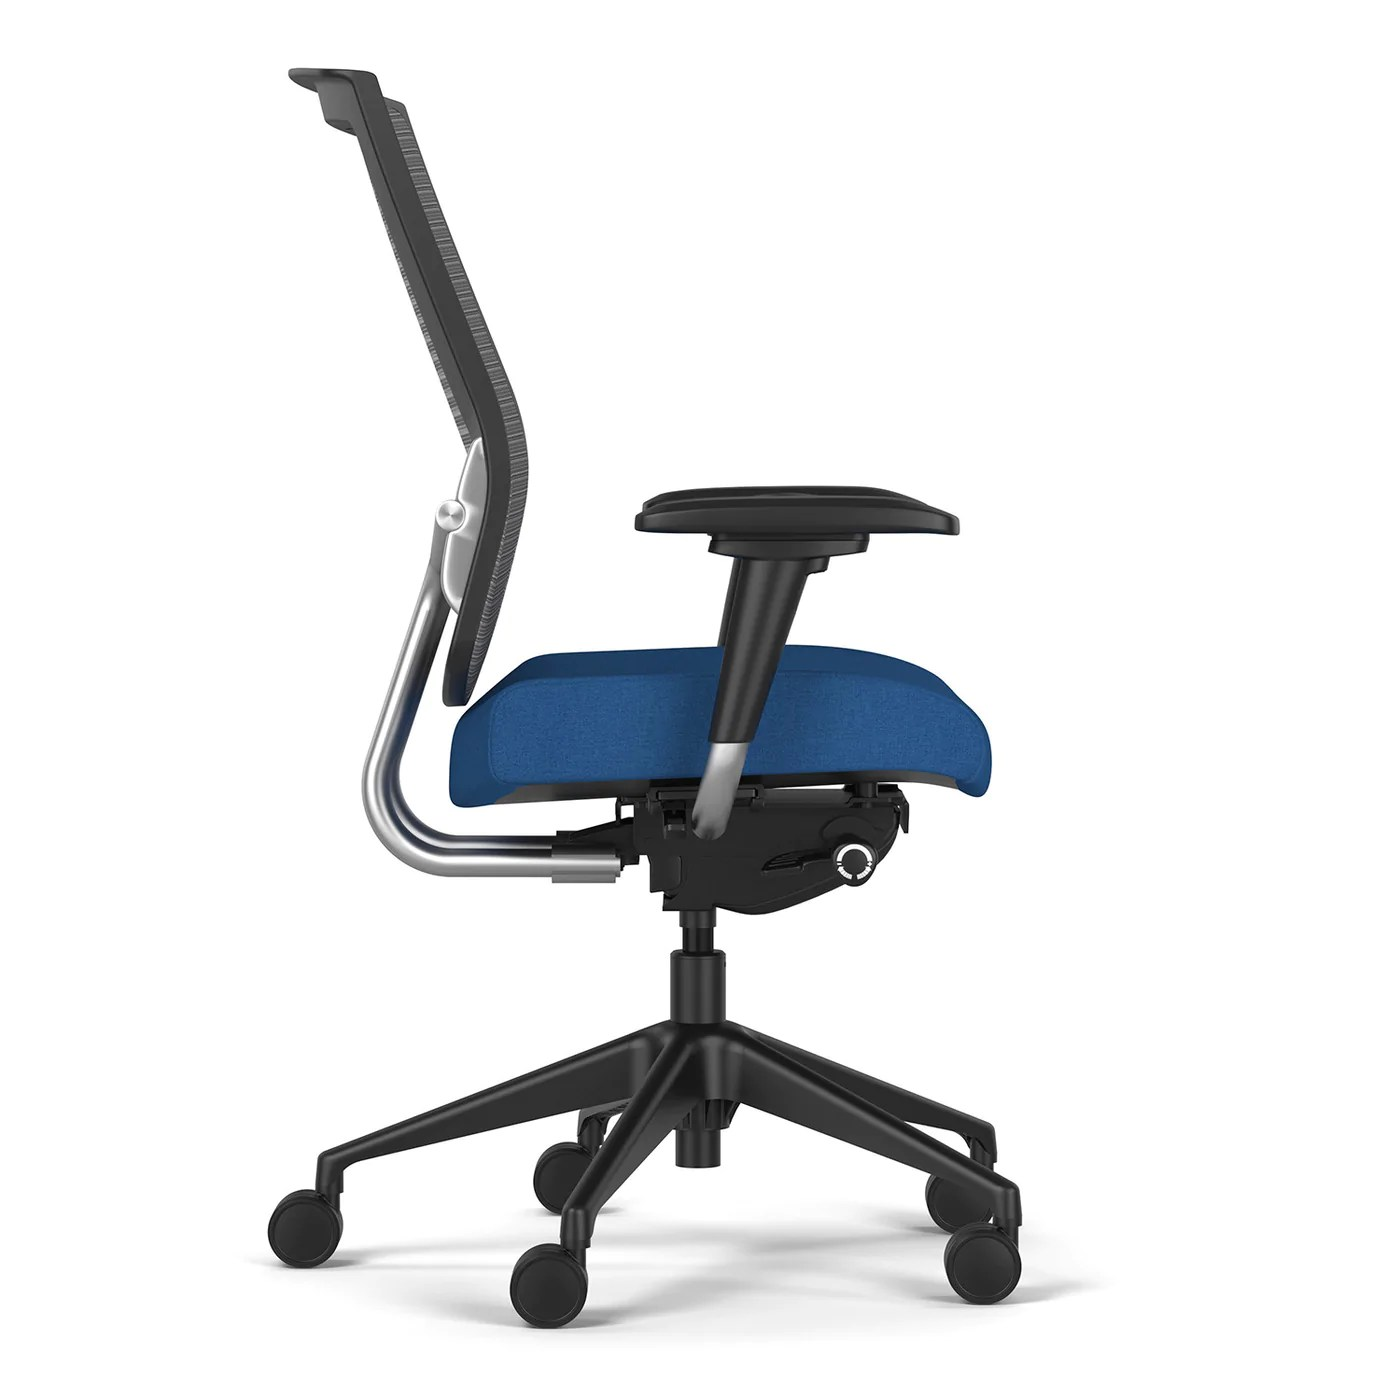 Sit On It Chairs Sit On It Focus Sport Task Chair